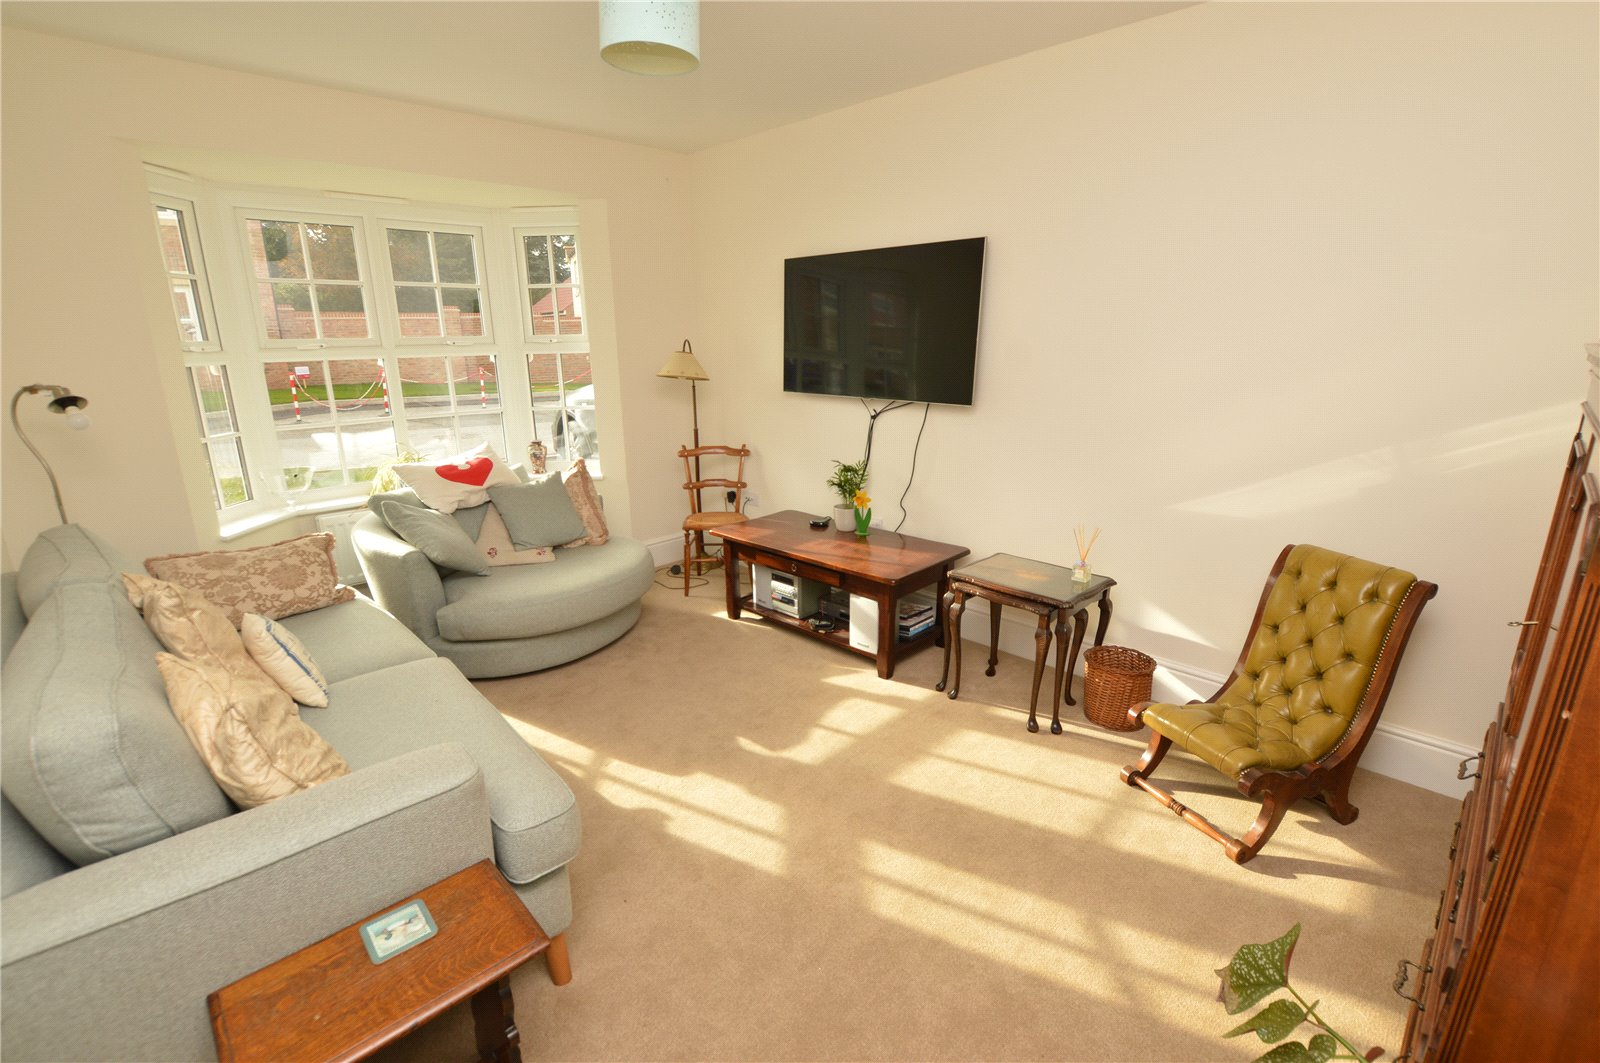 property for sale in Wetherby, interior reception room